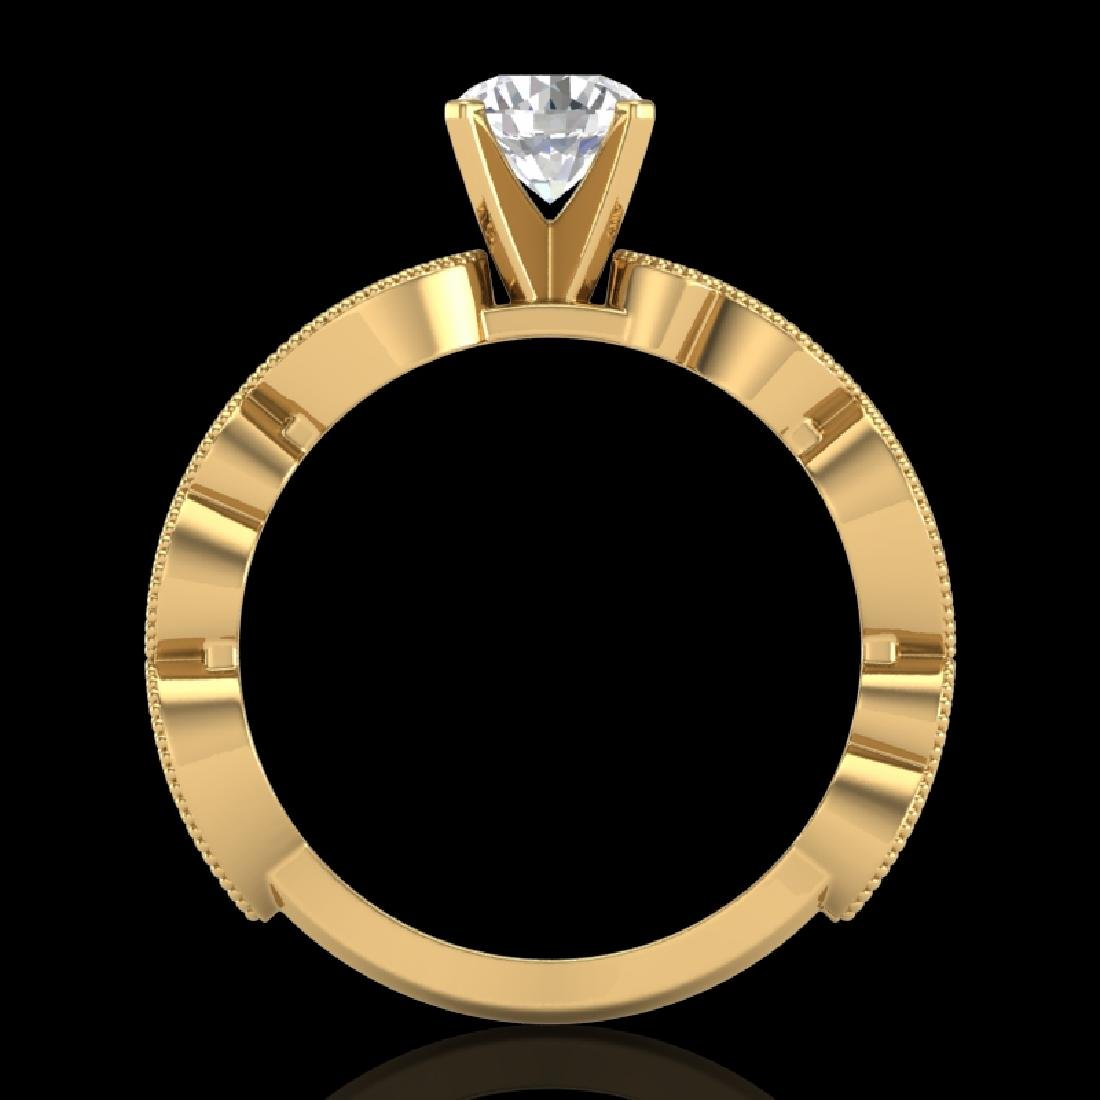 1.01 CTW VS/SI Diamond Solitaire Art Deco Ring 18K